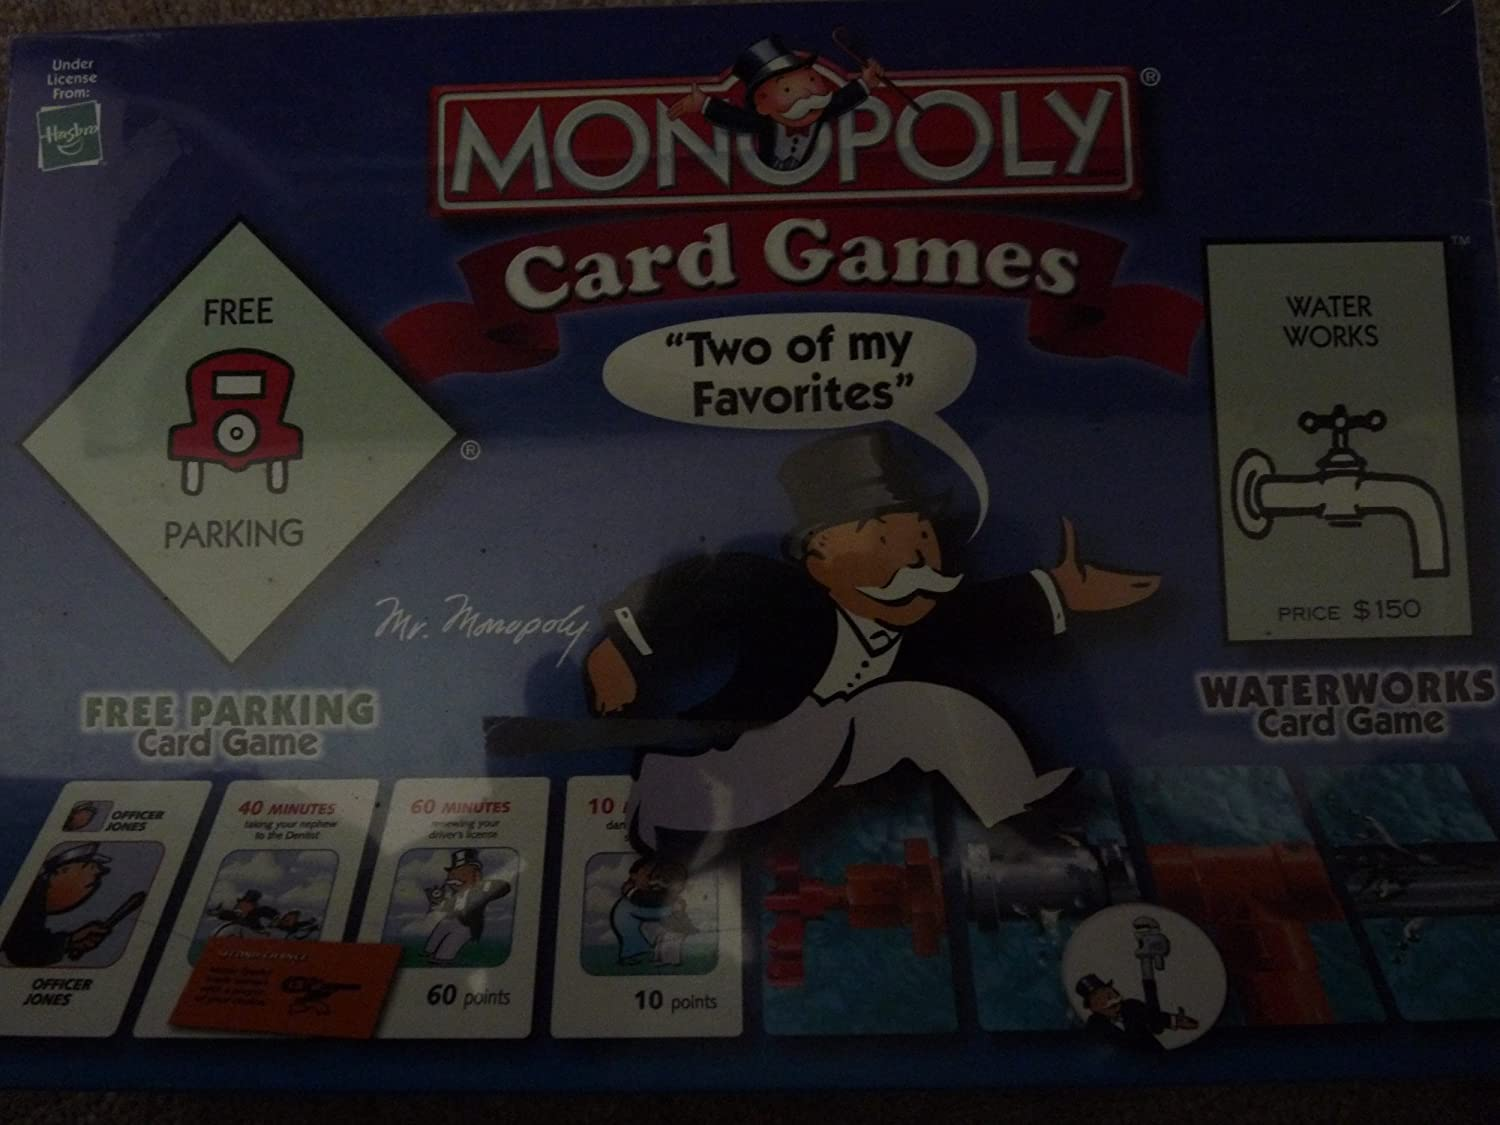 Board Games Hasbro Monopoly Card Games - Free Parking and Waterworks - Both in One Box! by: Amazon.es: Juguetes y juegos